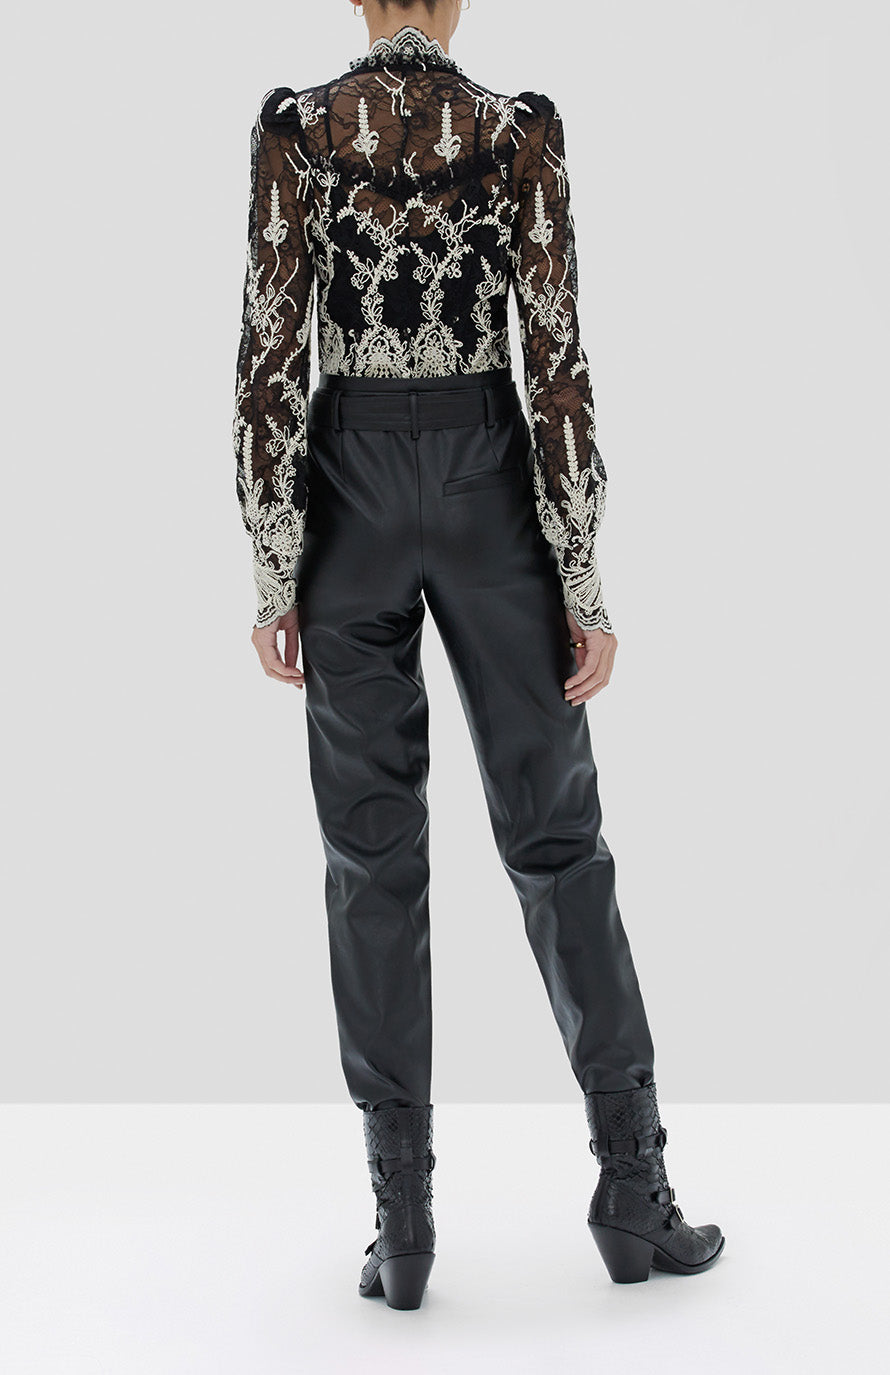 Alexis Boda Top in Black Embroidered Lace and Castile Pant in Black from the Holiday 2019 Ready To Wear Collection - Rear View